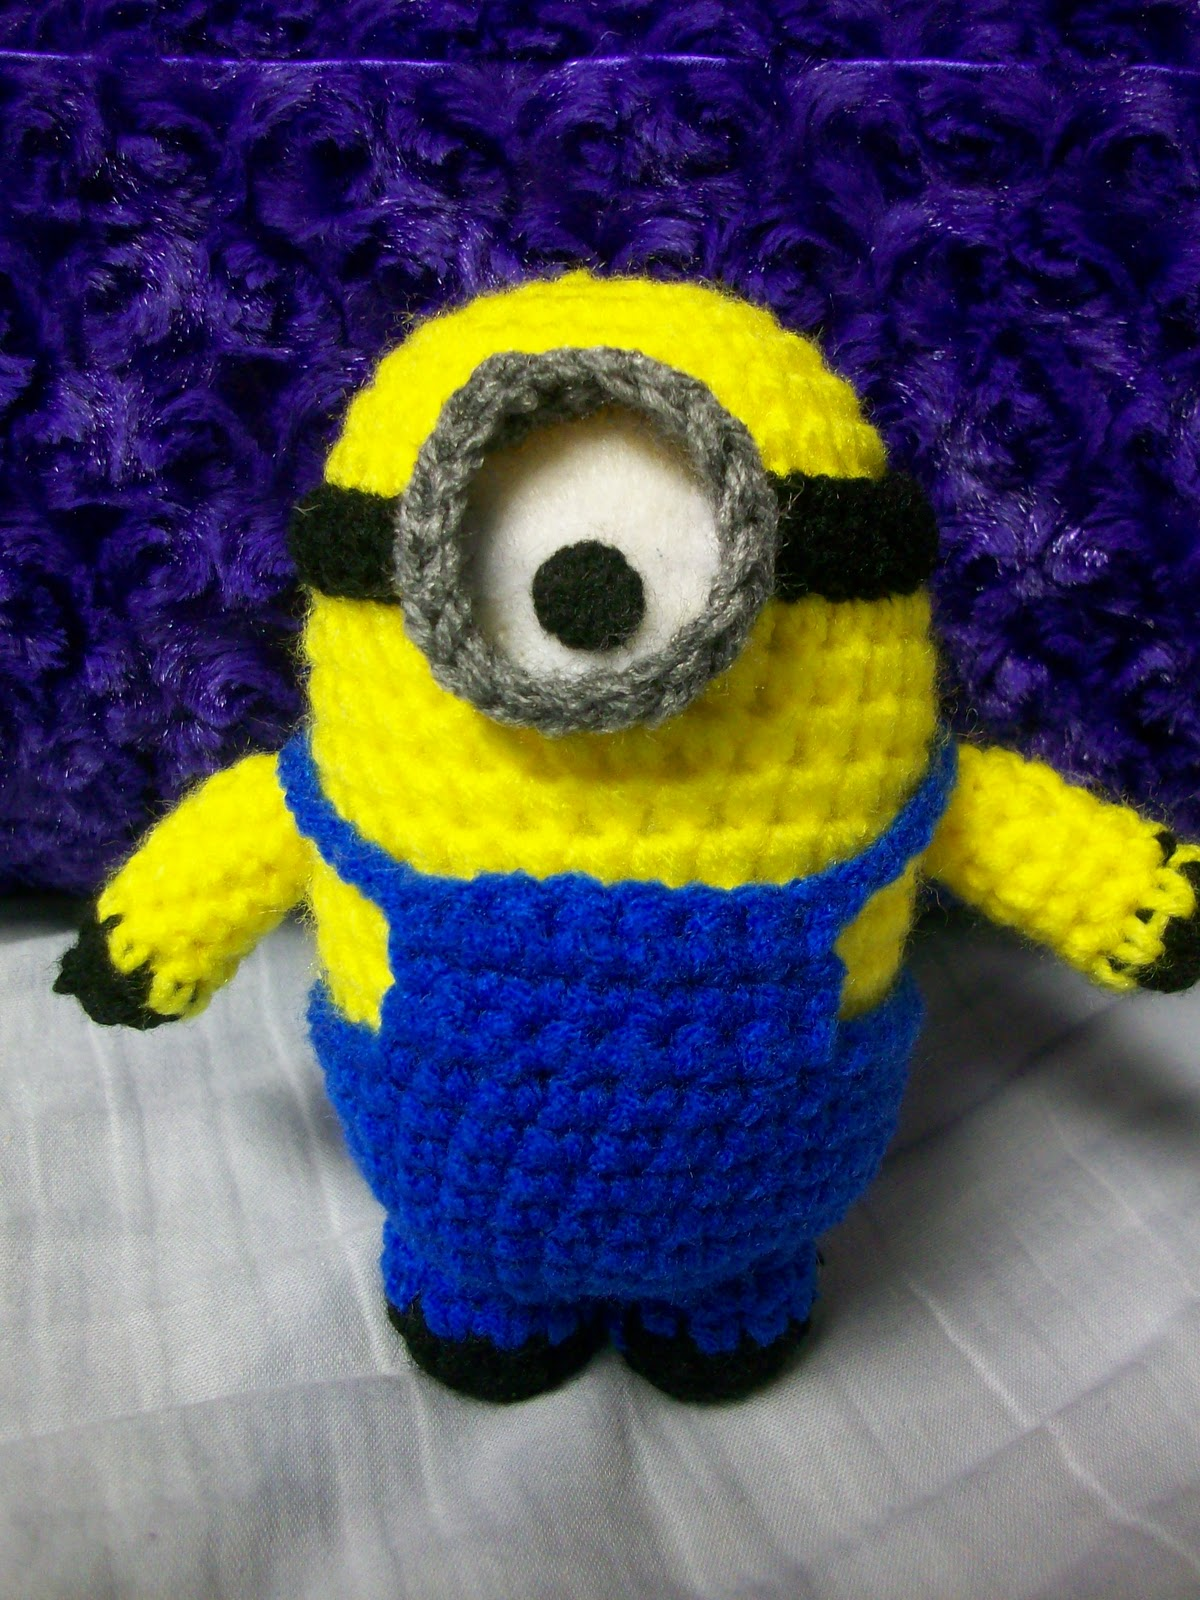 Crochet Pattern Minion : despicable me minion crochet pattern Car Tuning